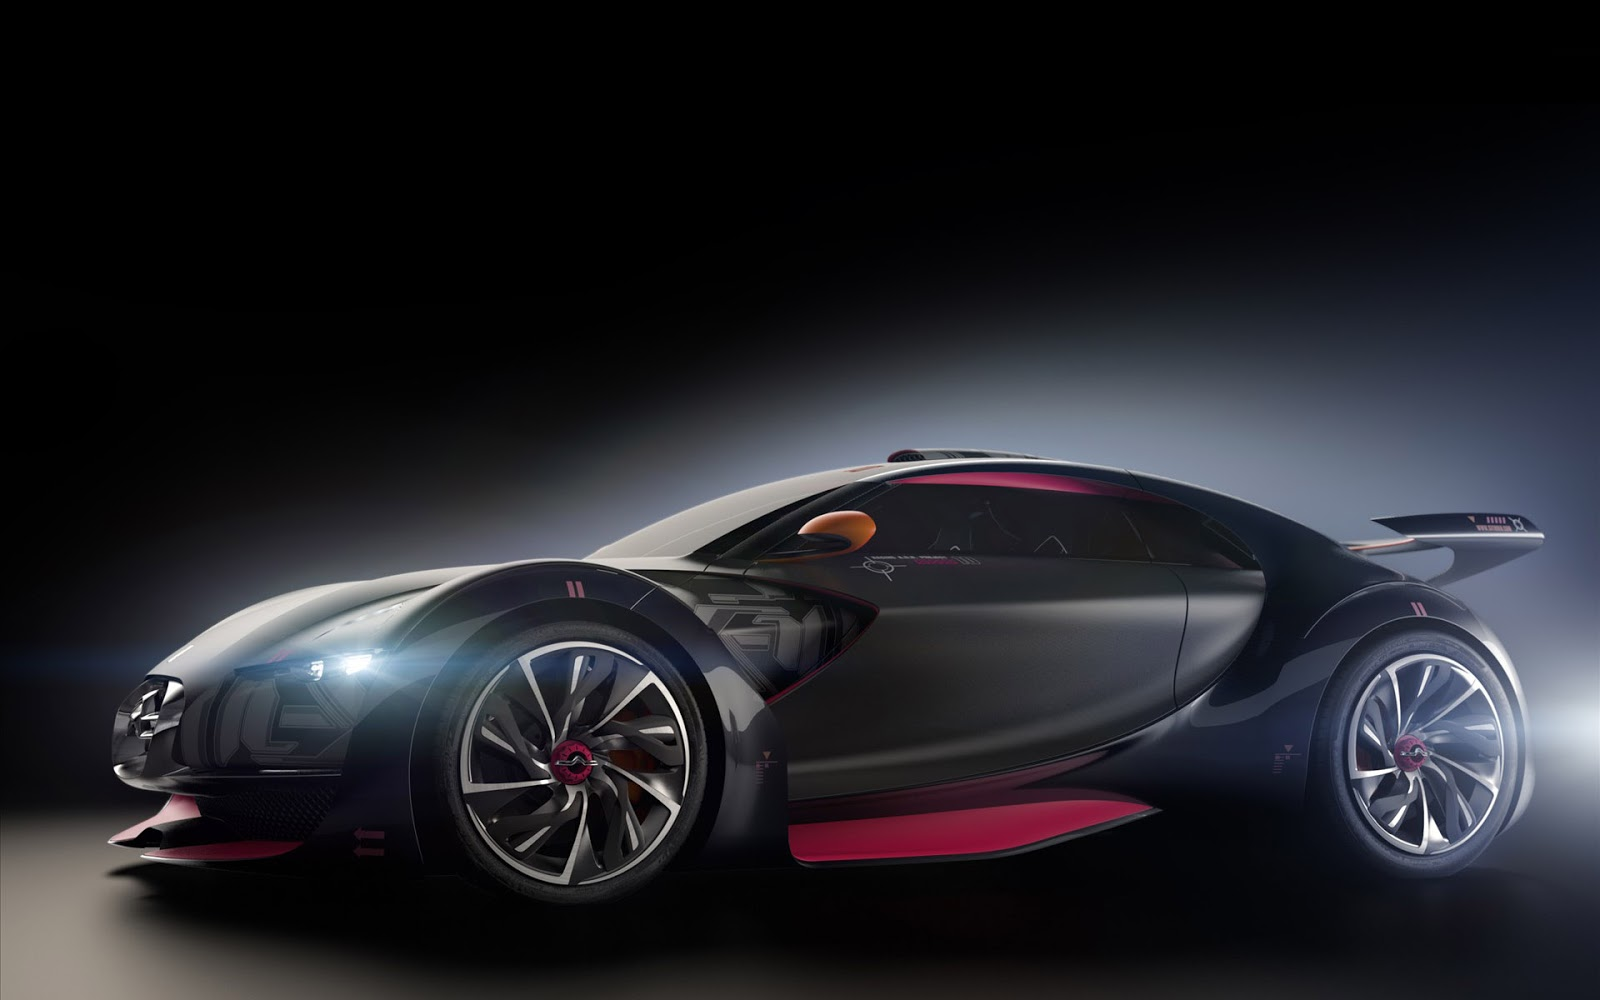 Cars Wallpapers: Wallpaper Car 1080p Collection